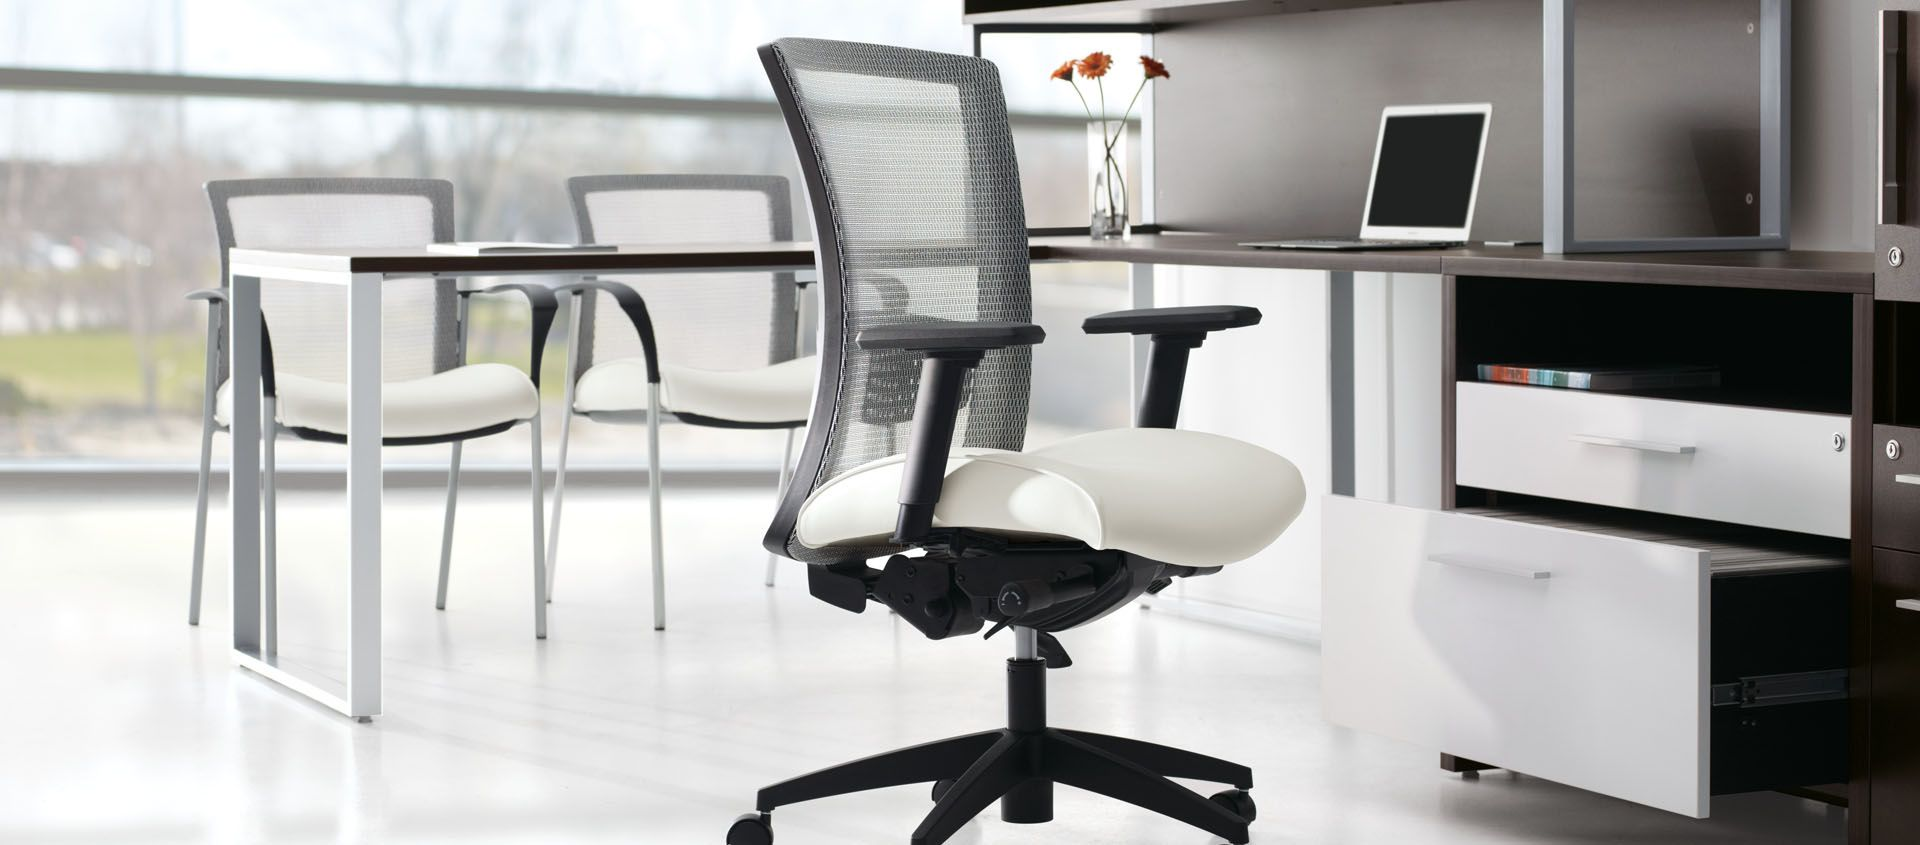 Let Rockville, Maryland Based Direct Office Furniture, Inc. Assist You In  Furnishing Your MD, Washington DC, Northern Virginia, And Nationwide Offices  With ...